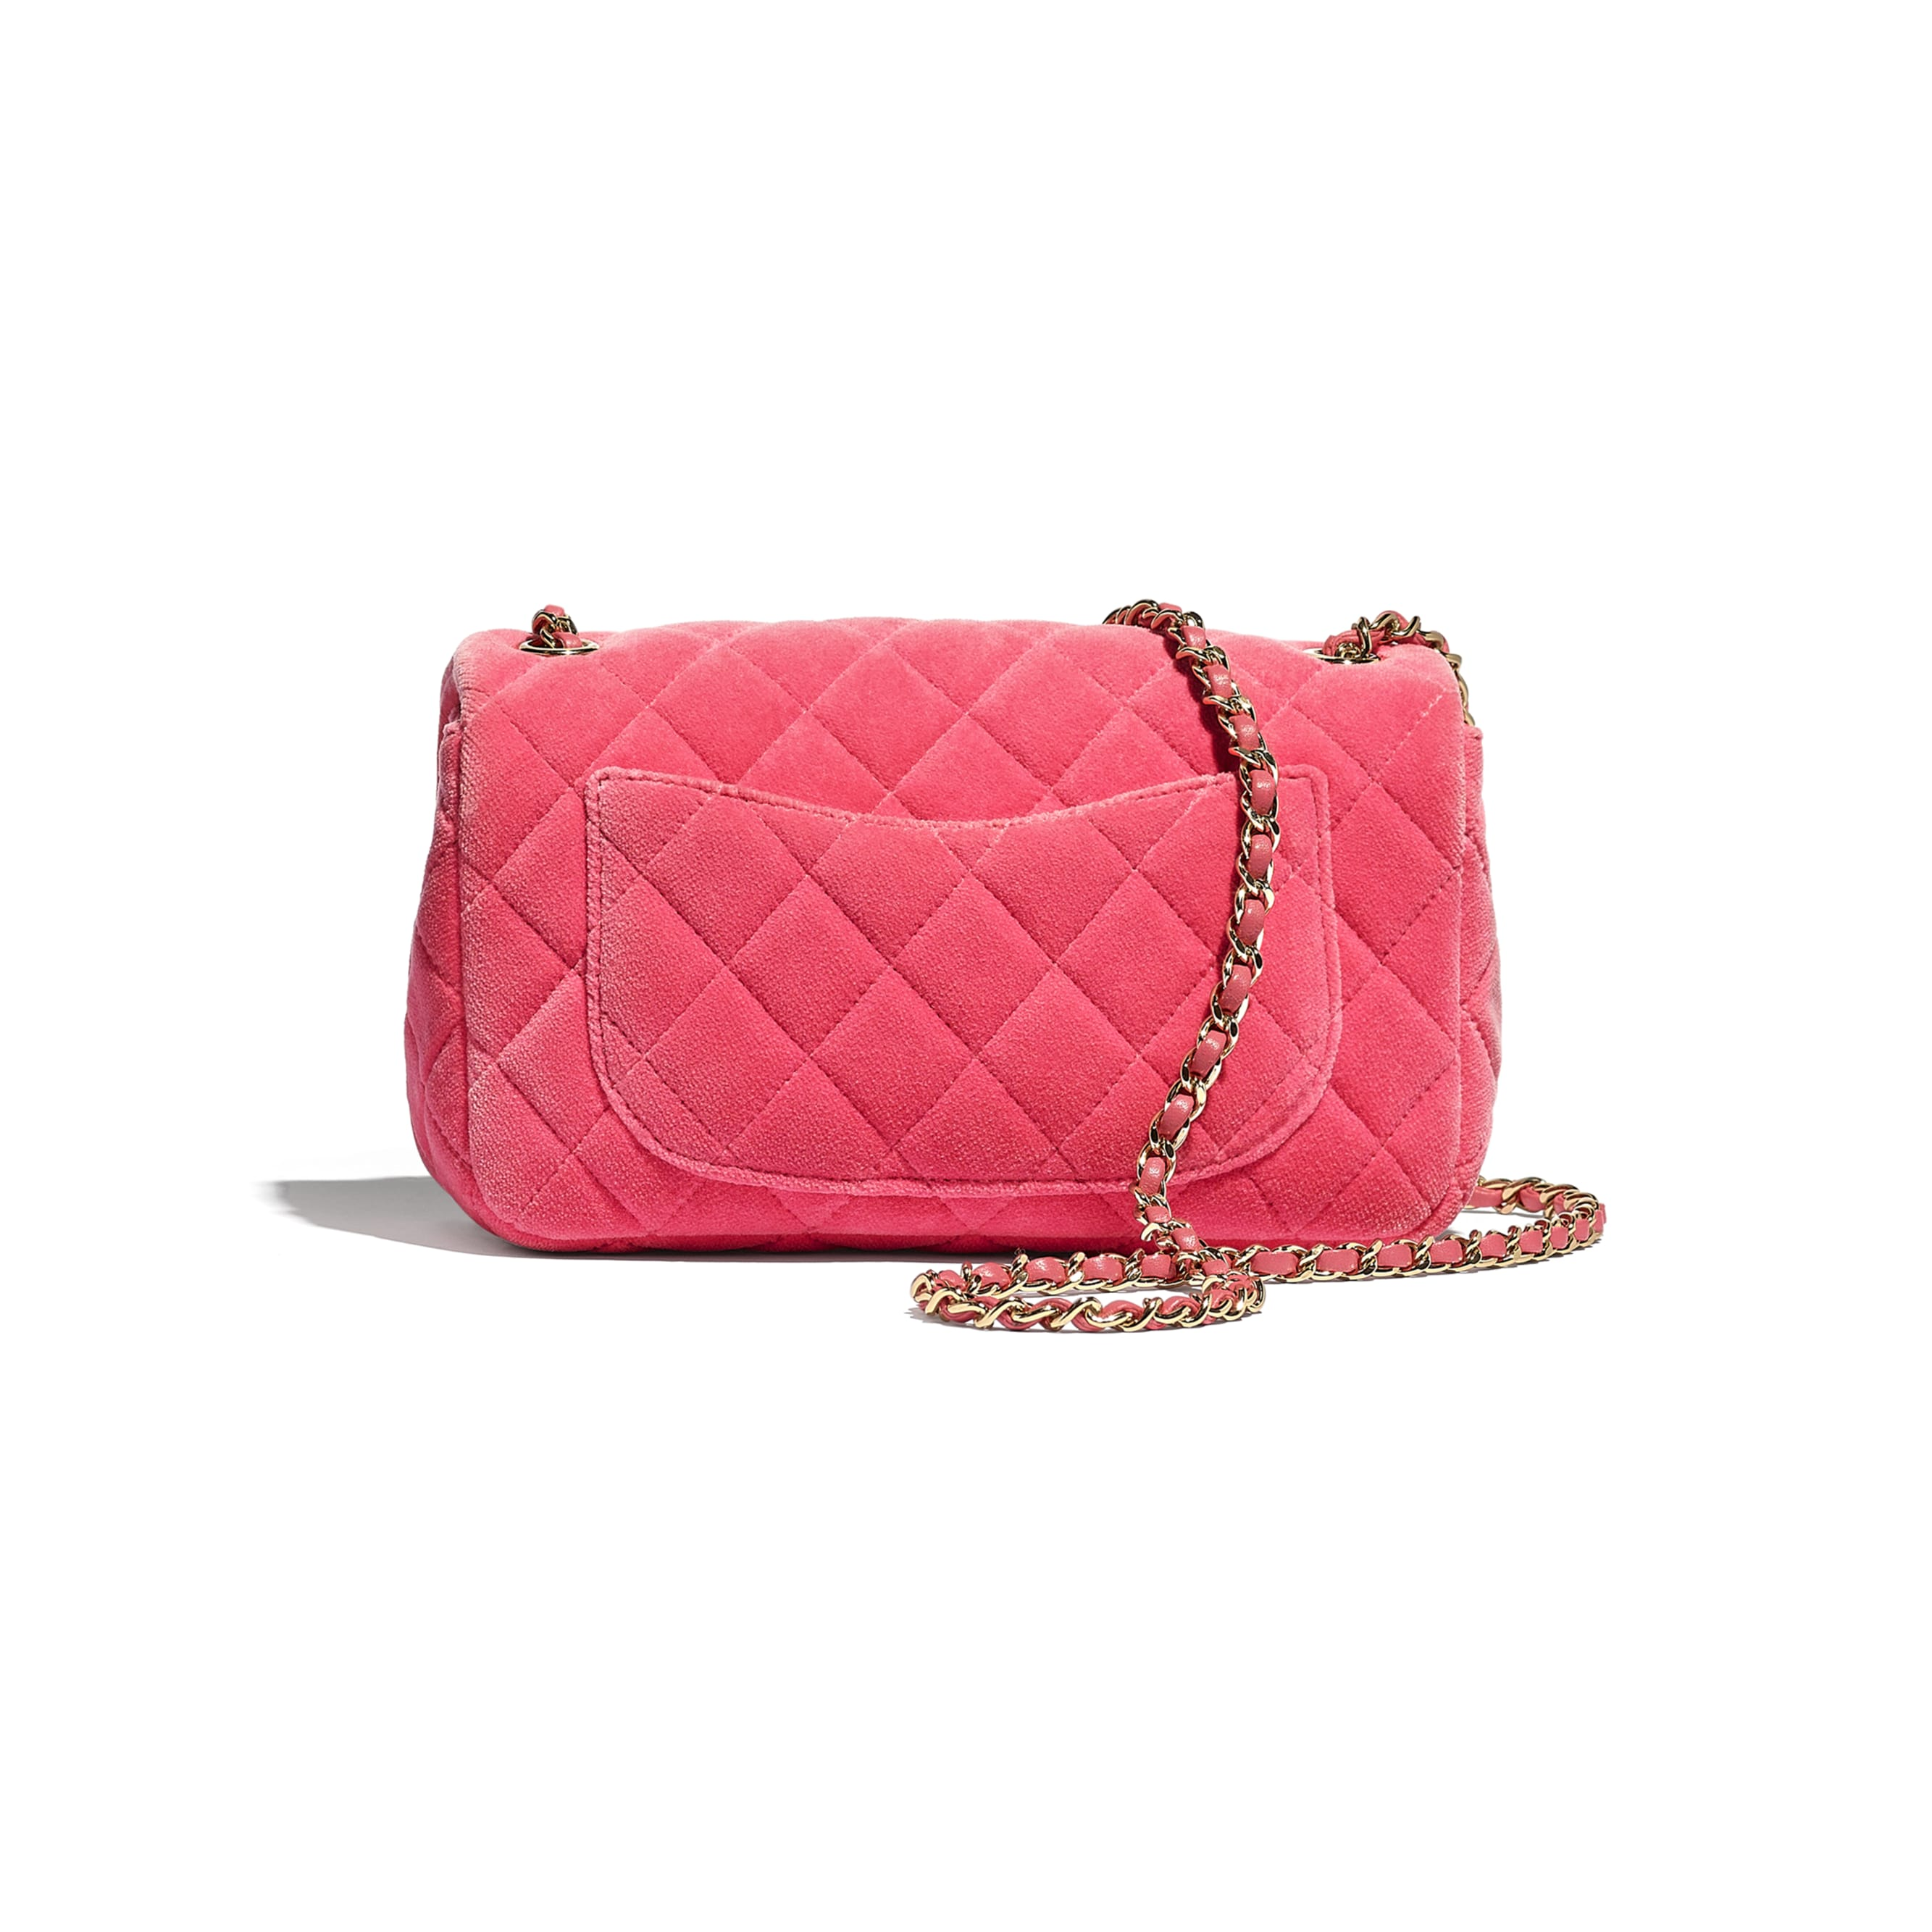 Flap Bag - Coral - Velvet, Strass & Gold-Tone Metal - CHANEL - Alternative view - see standard sized version